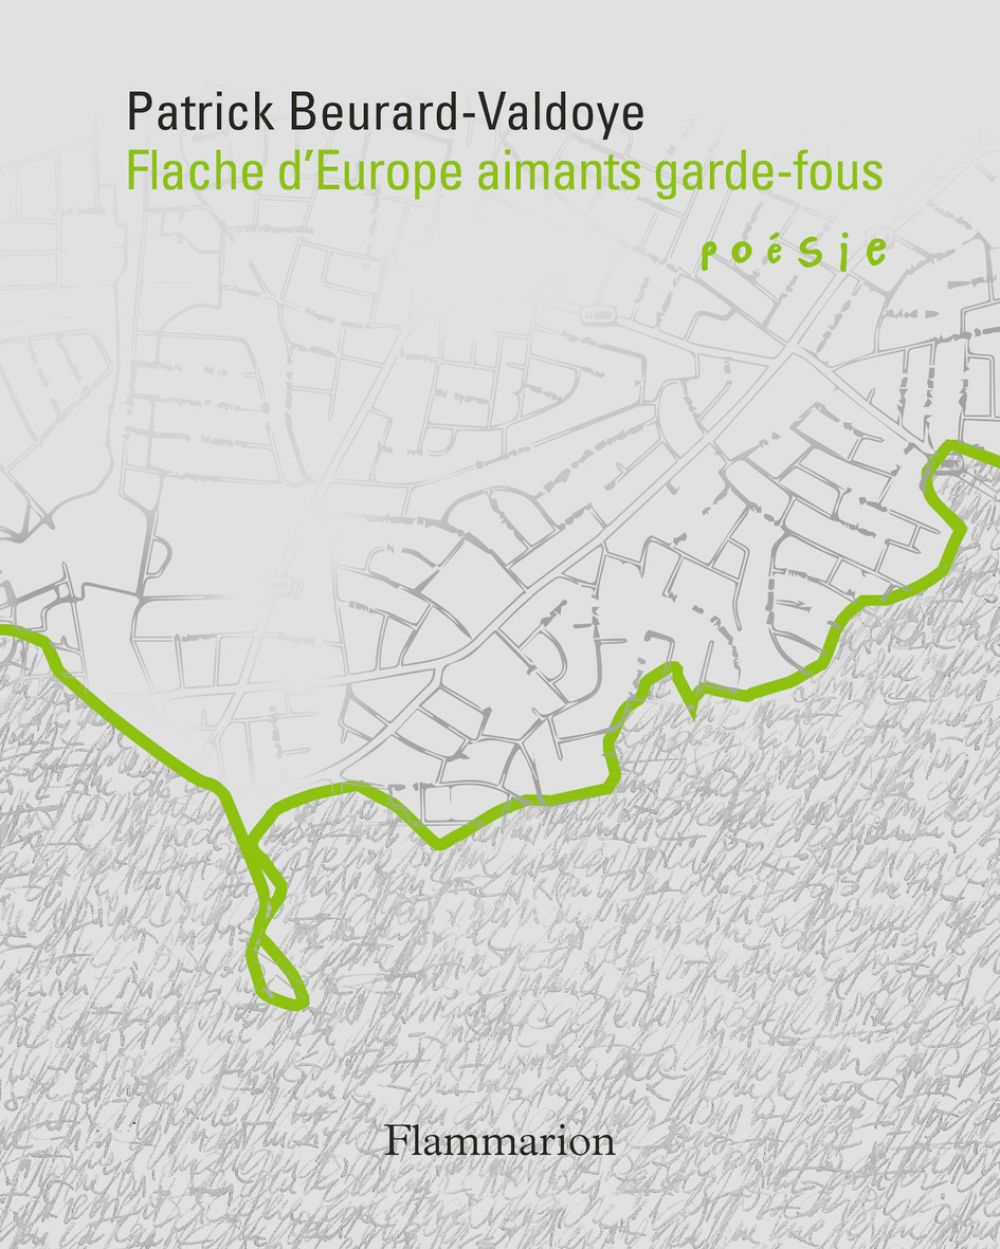 Cycle des exils (VII) - Flache d'Europe aimants garde-fous